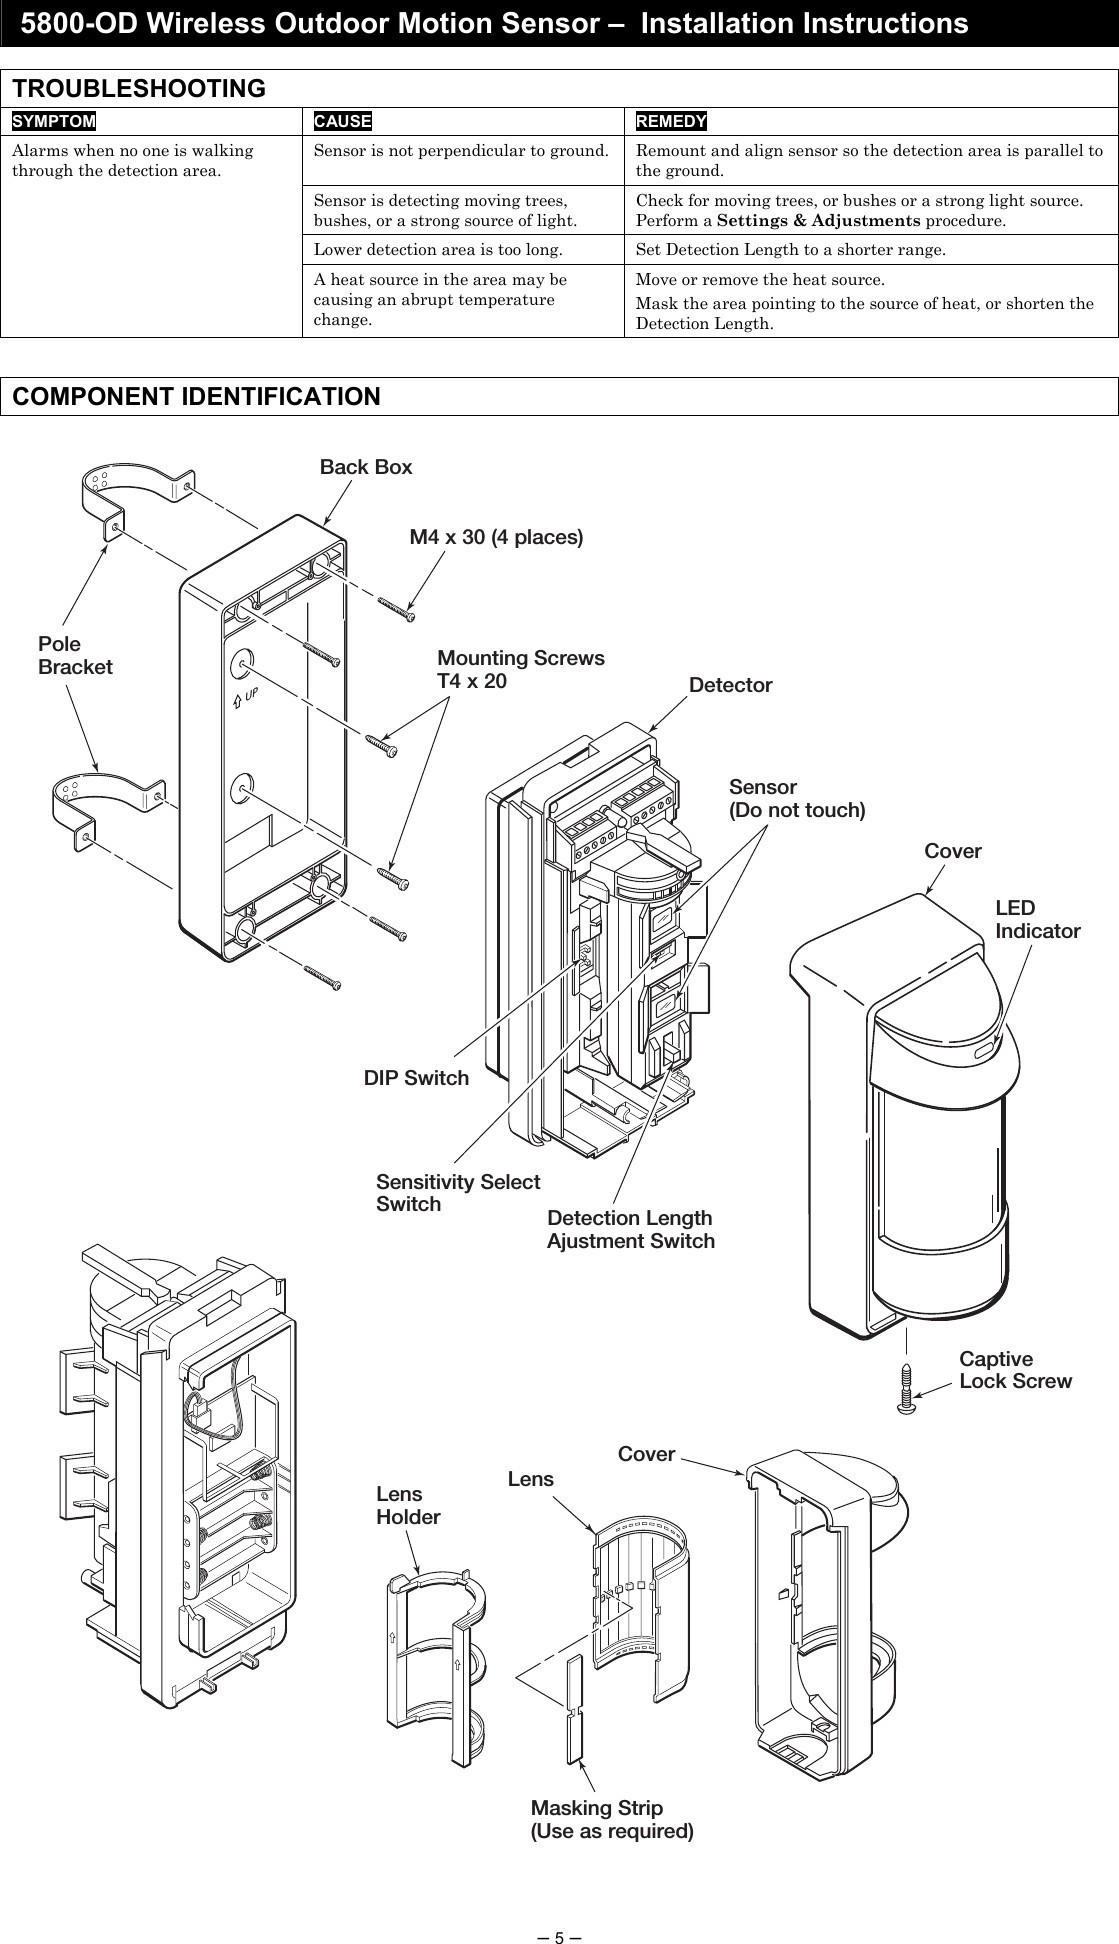 Bulldog Security Wiring Diagrams Wiring Diagram Burglar Alarm Systems Fresh Alarm Panel Wiring Of Bulldog Security Wiring Diagrams